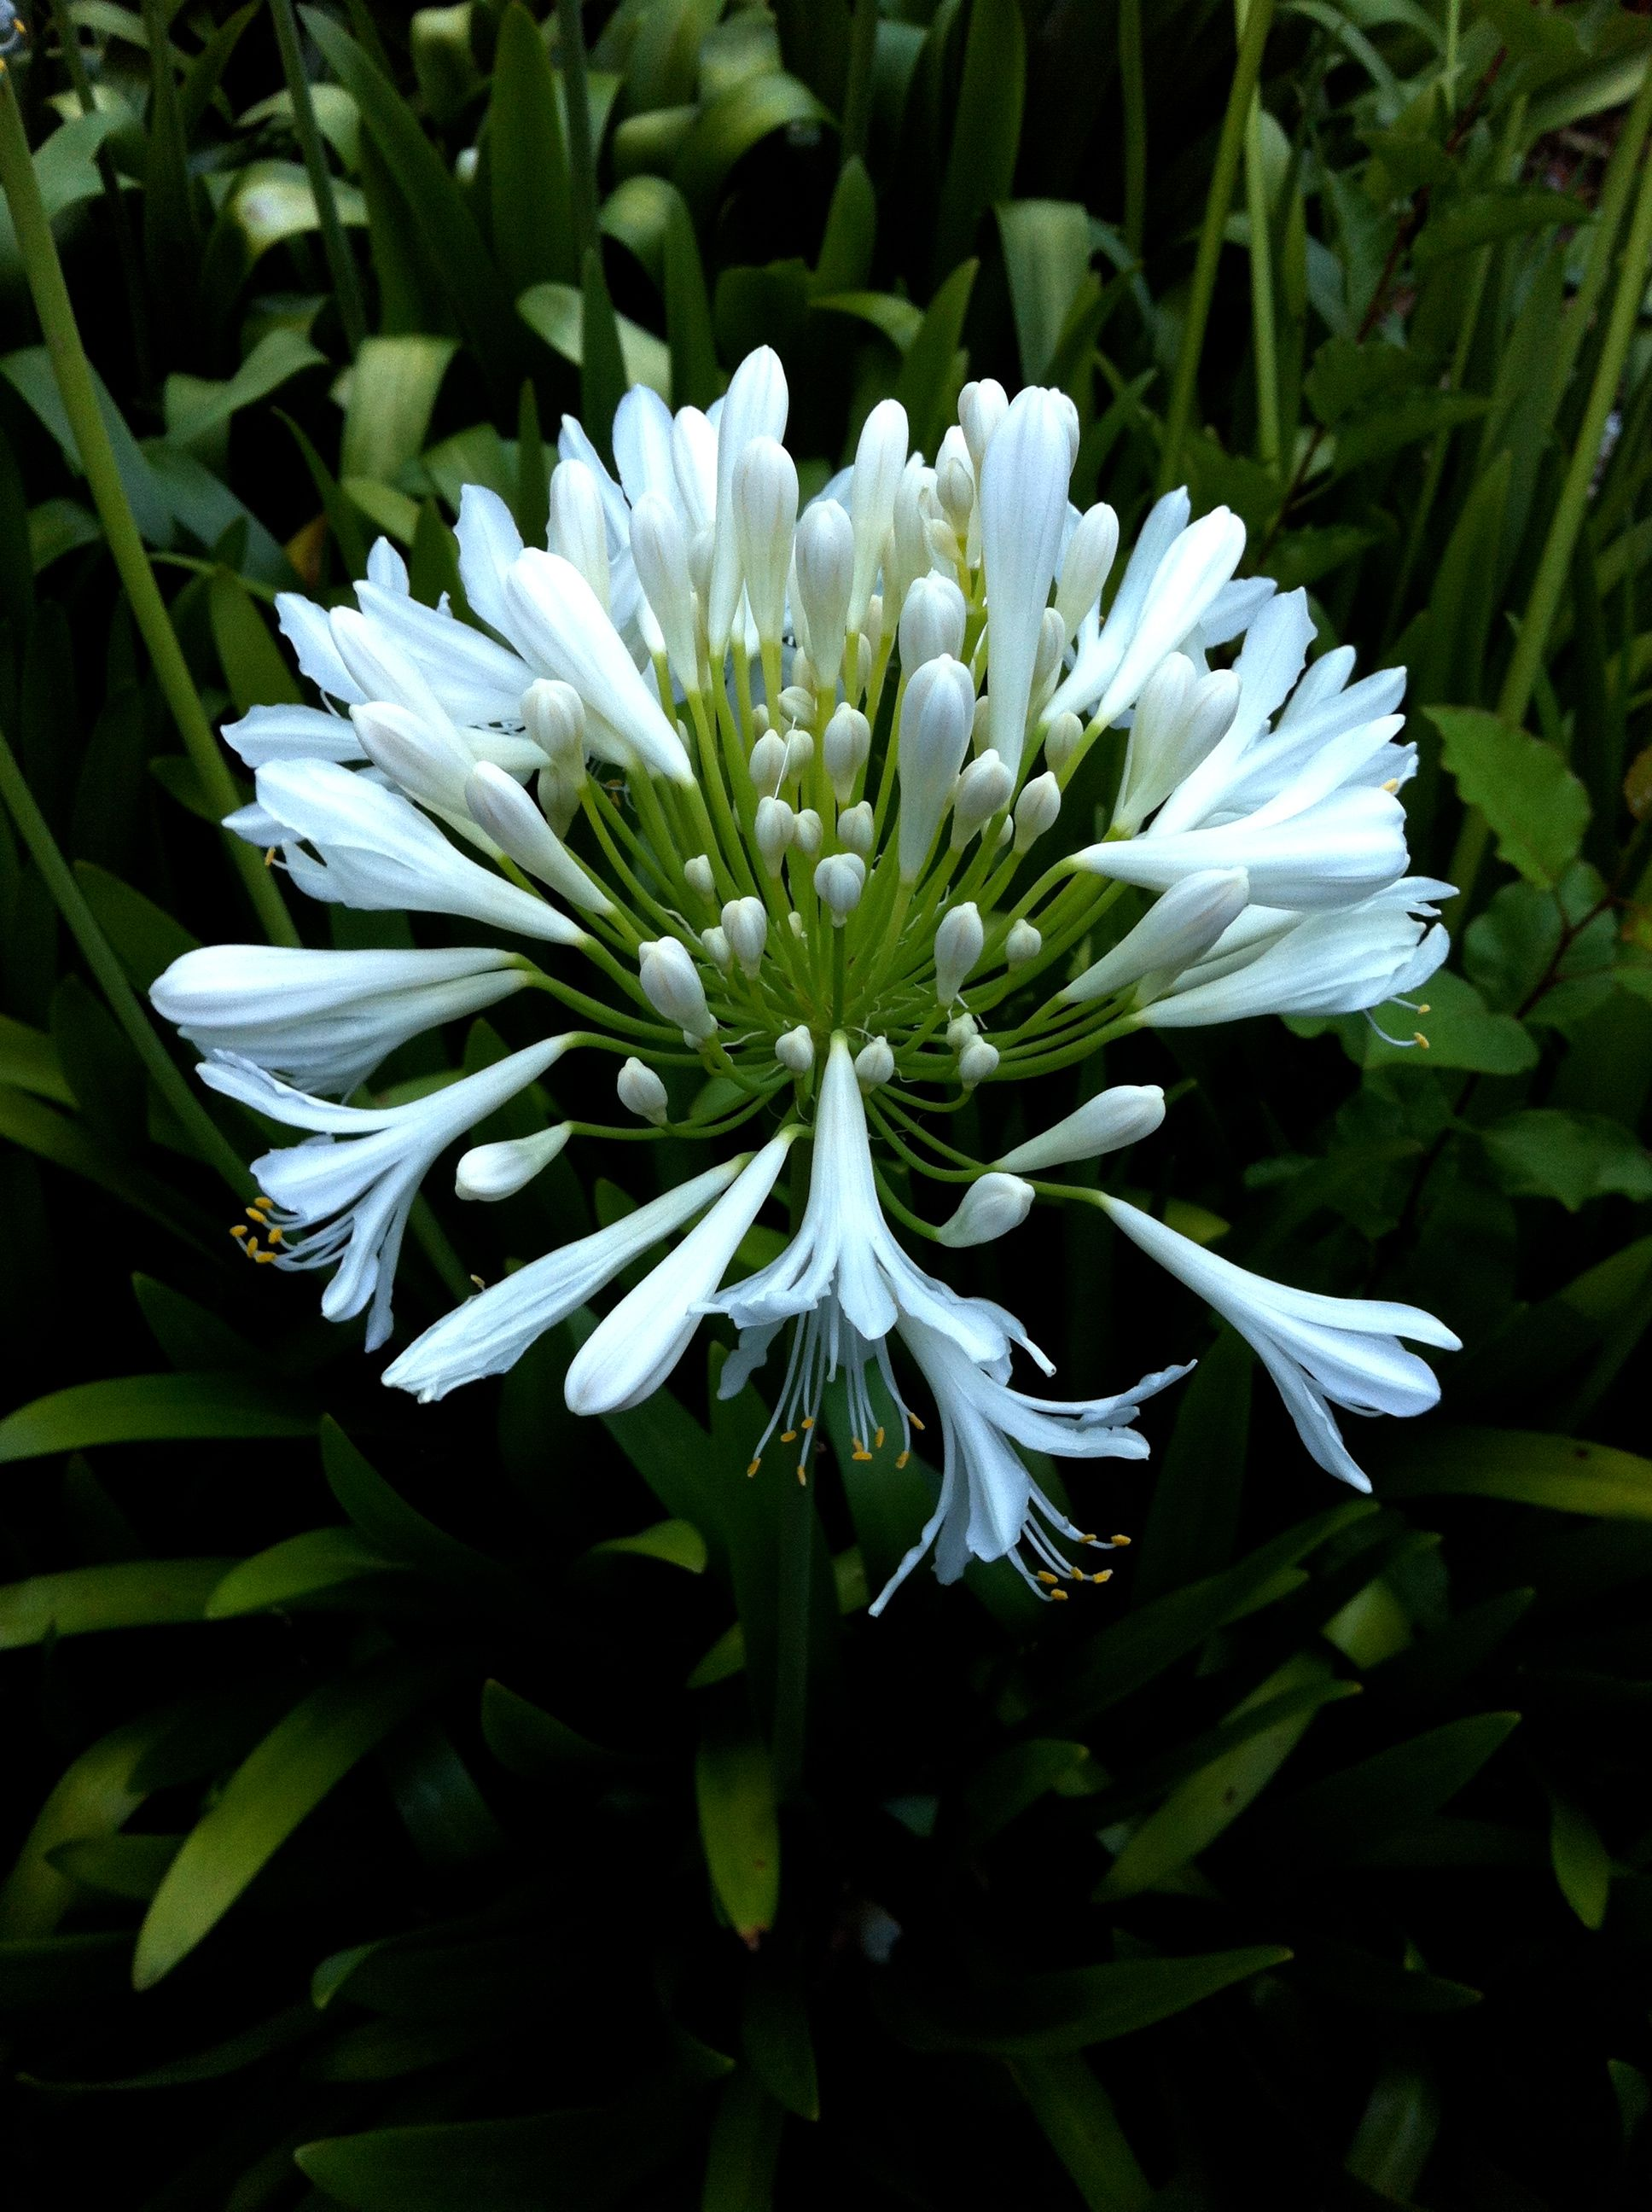 love agapanthus...I can't seem to grow this favorite plant that looks spectacular in pots here in my DUrham, NC garden. Anyone have some advice?